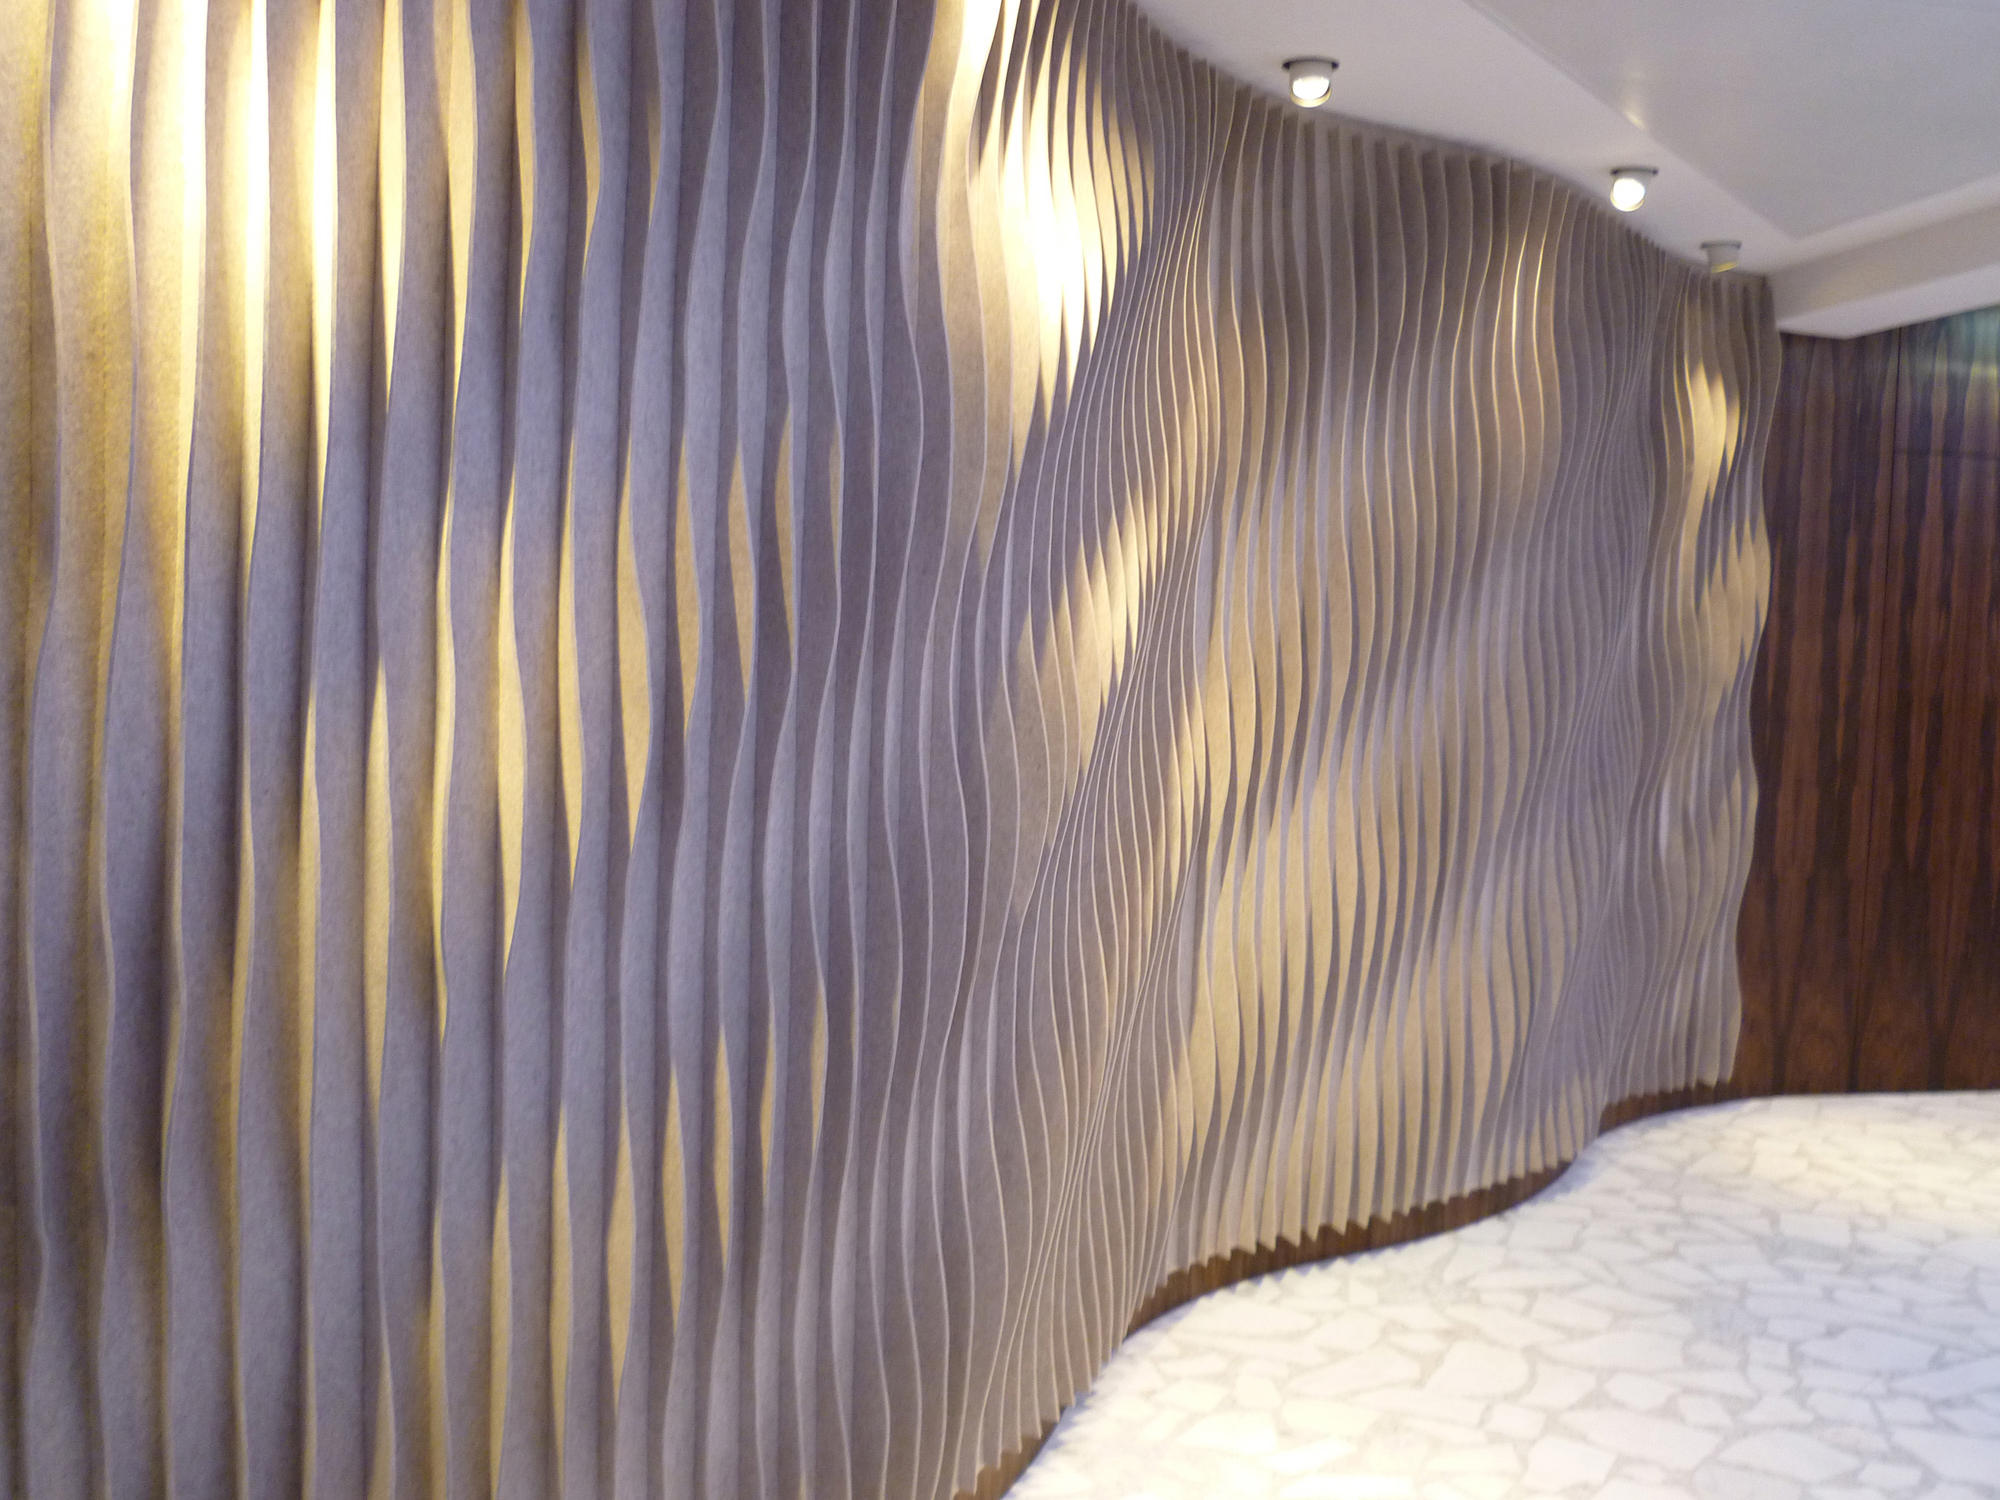 Image of: Acoustic Wall Panels Contemporary